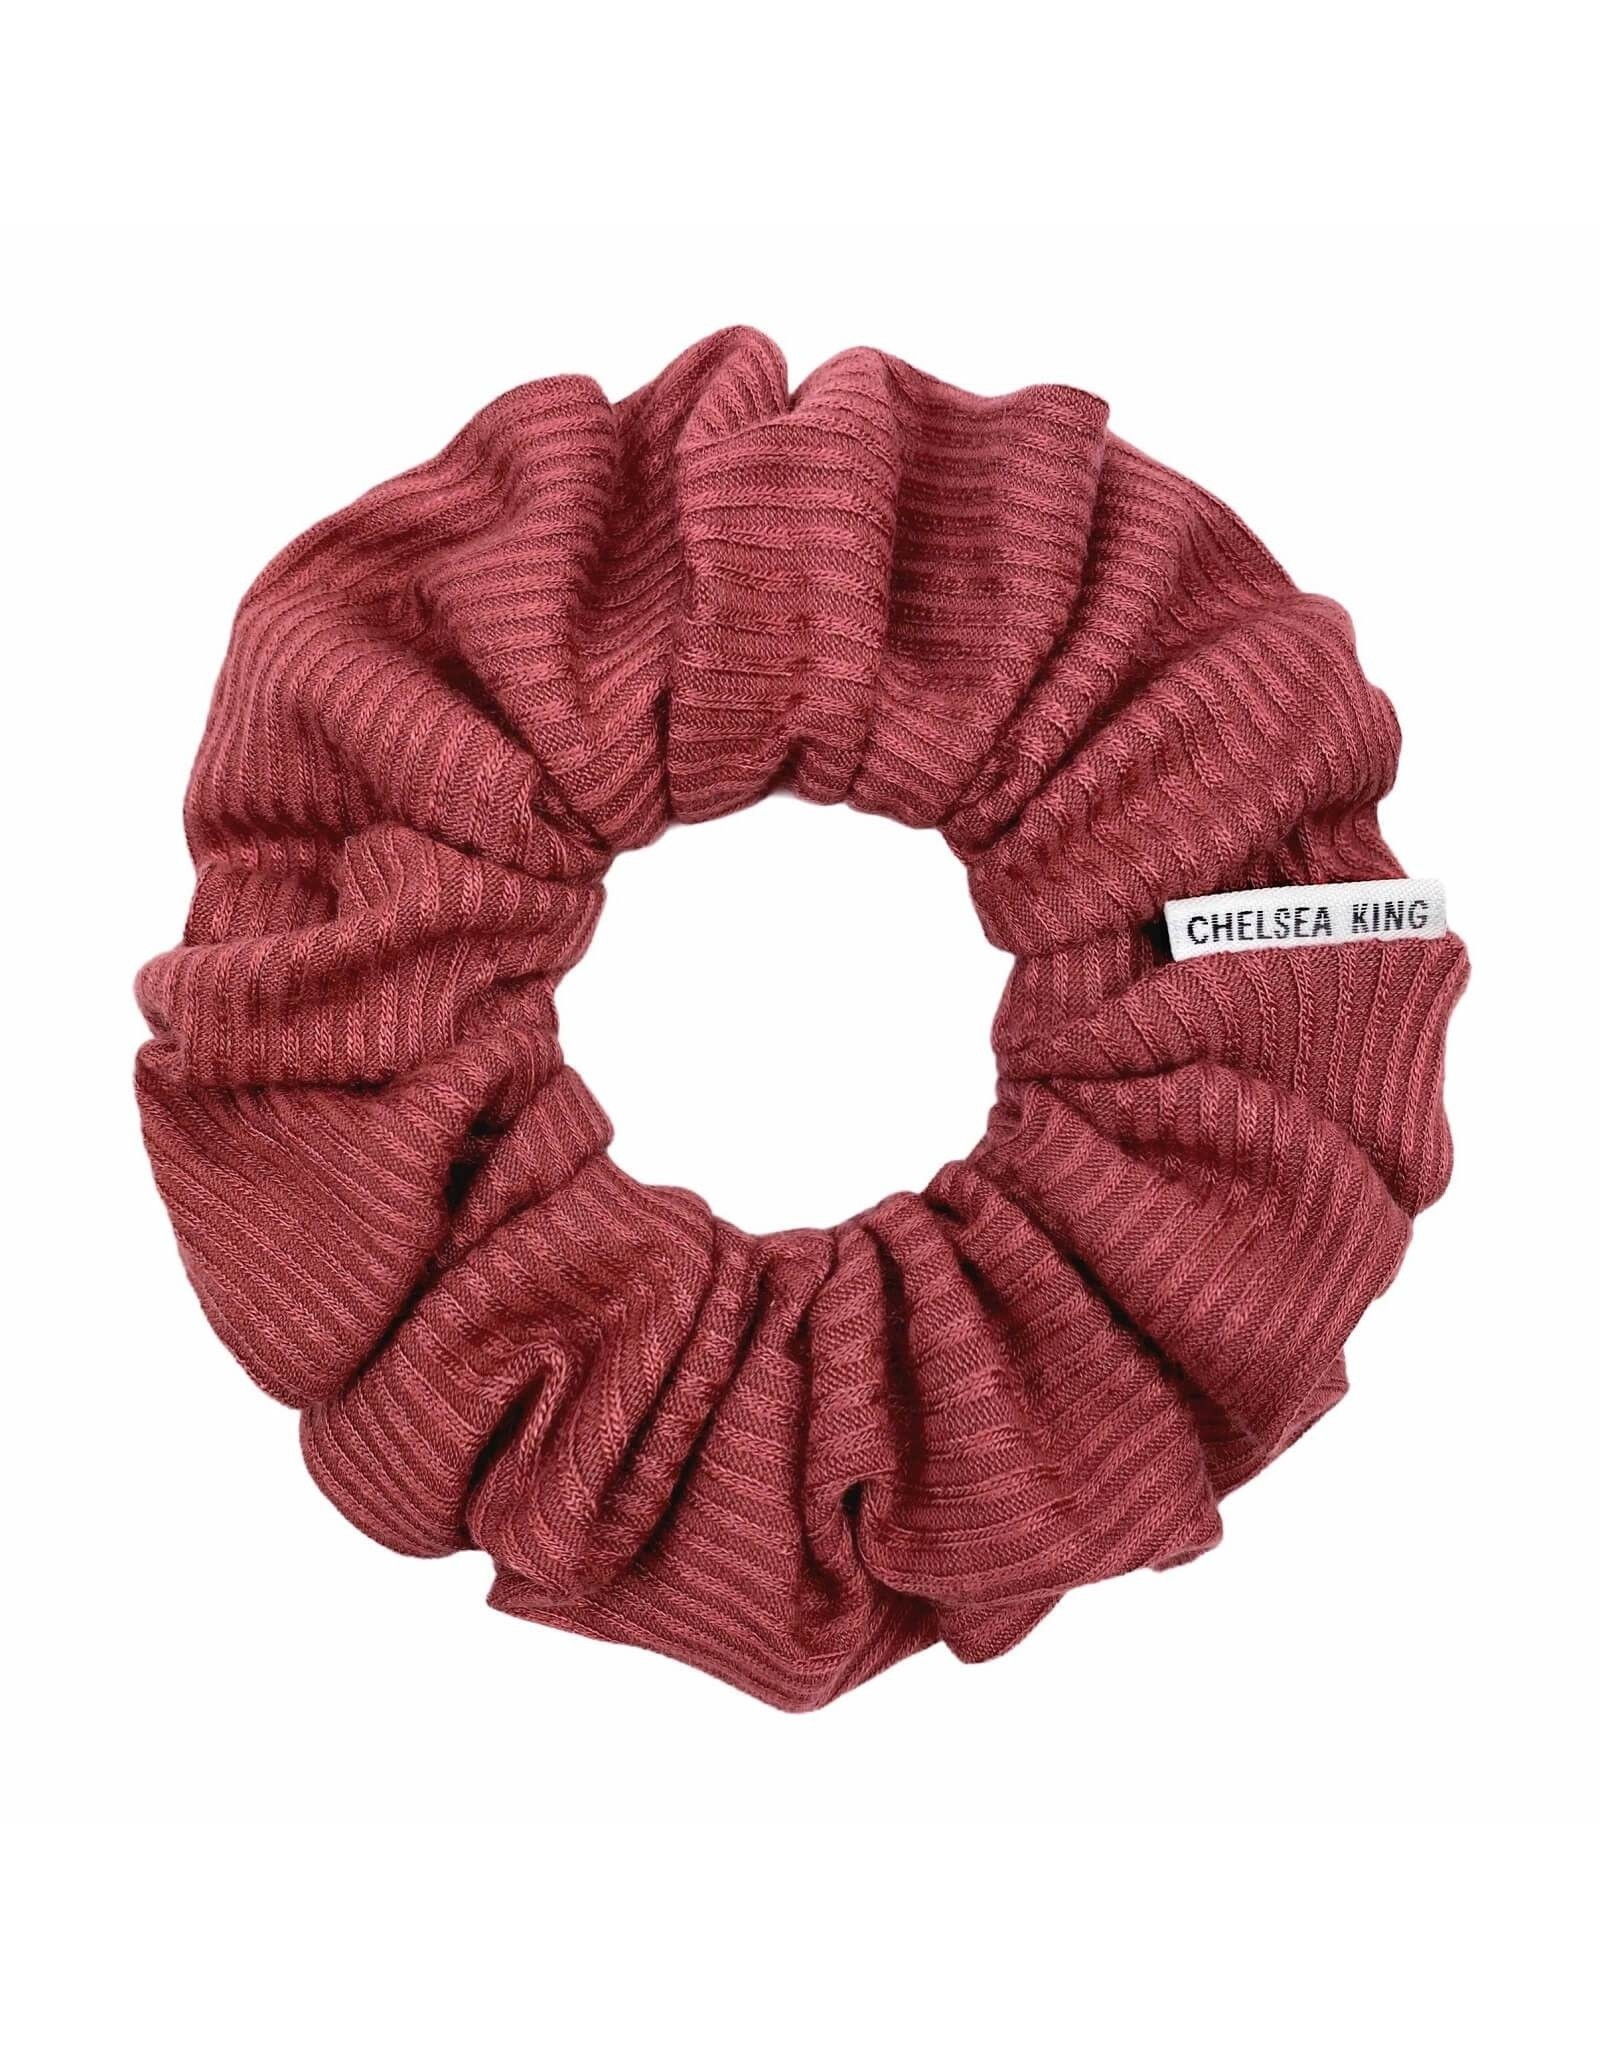 Chelsea King French Ribbed Mulberry Scrunchie